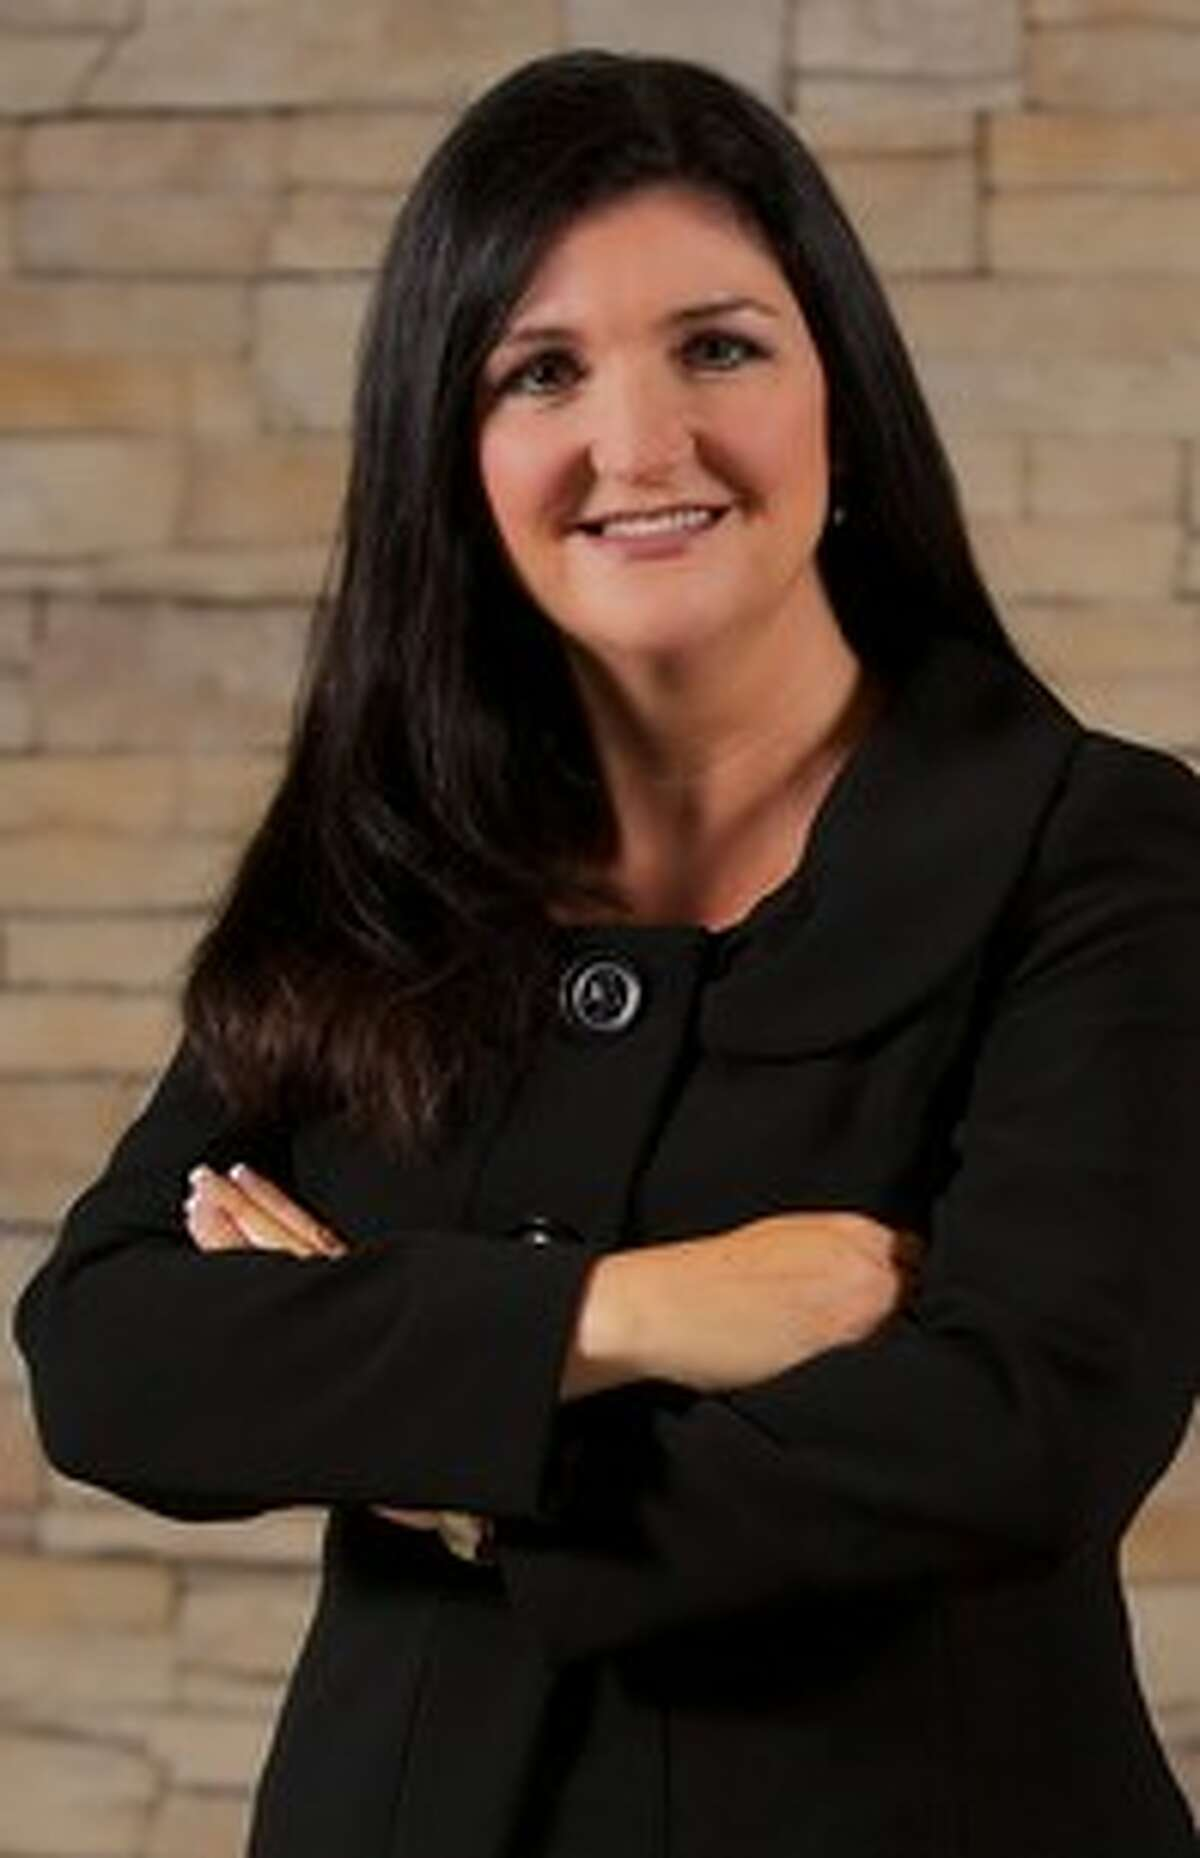 Collin County attorney Heather Barbieri is part of Attorney General Ken Paxton's legal team (photo from Barbieri Law Firm Website)